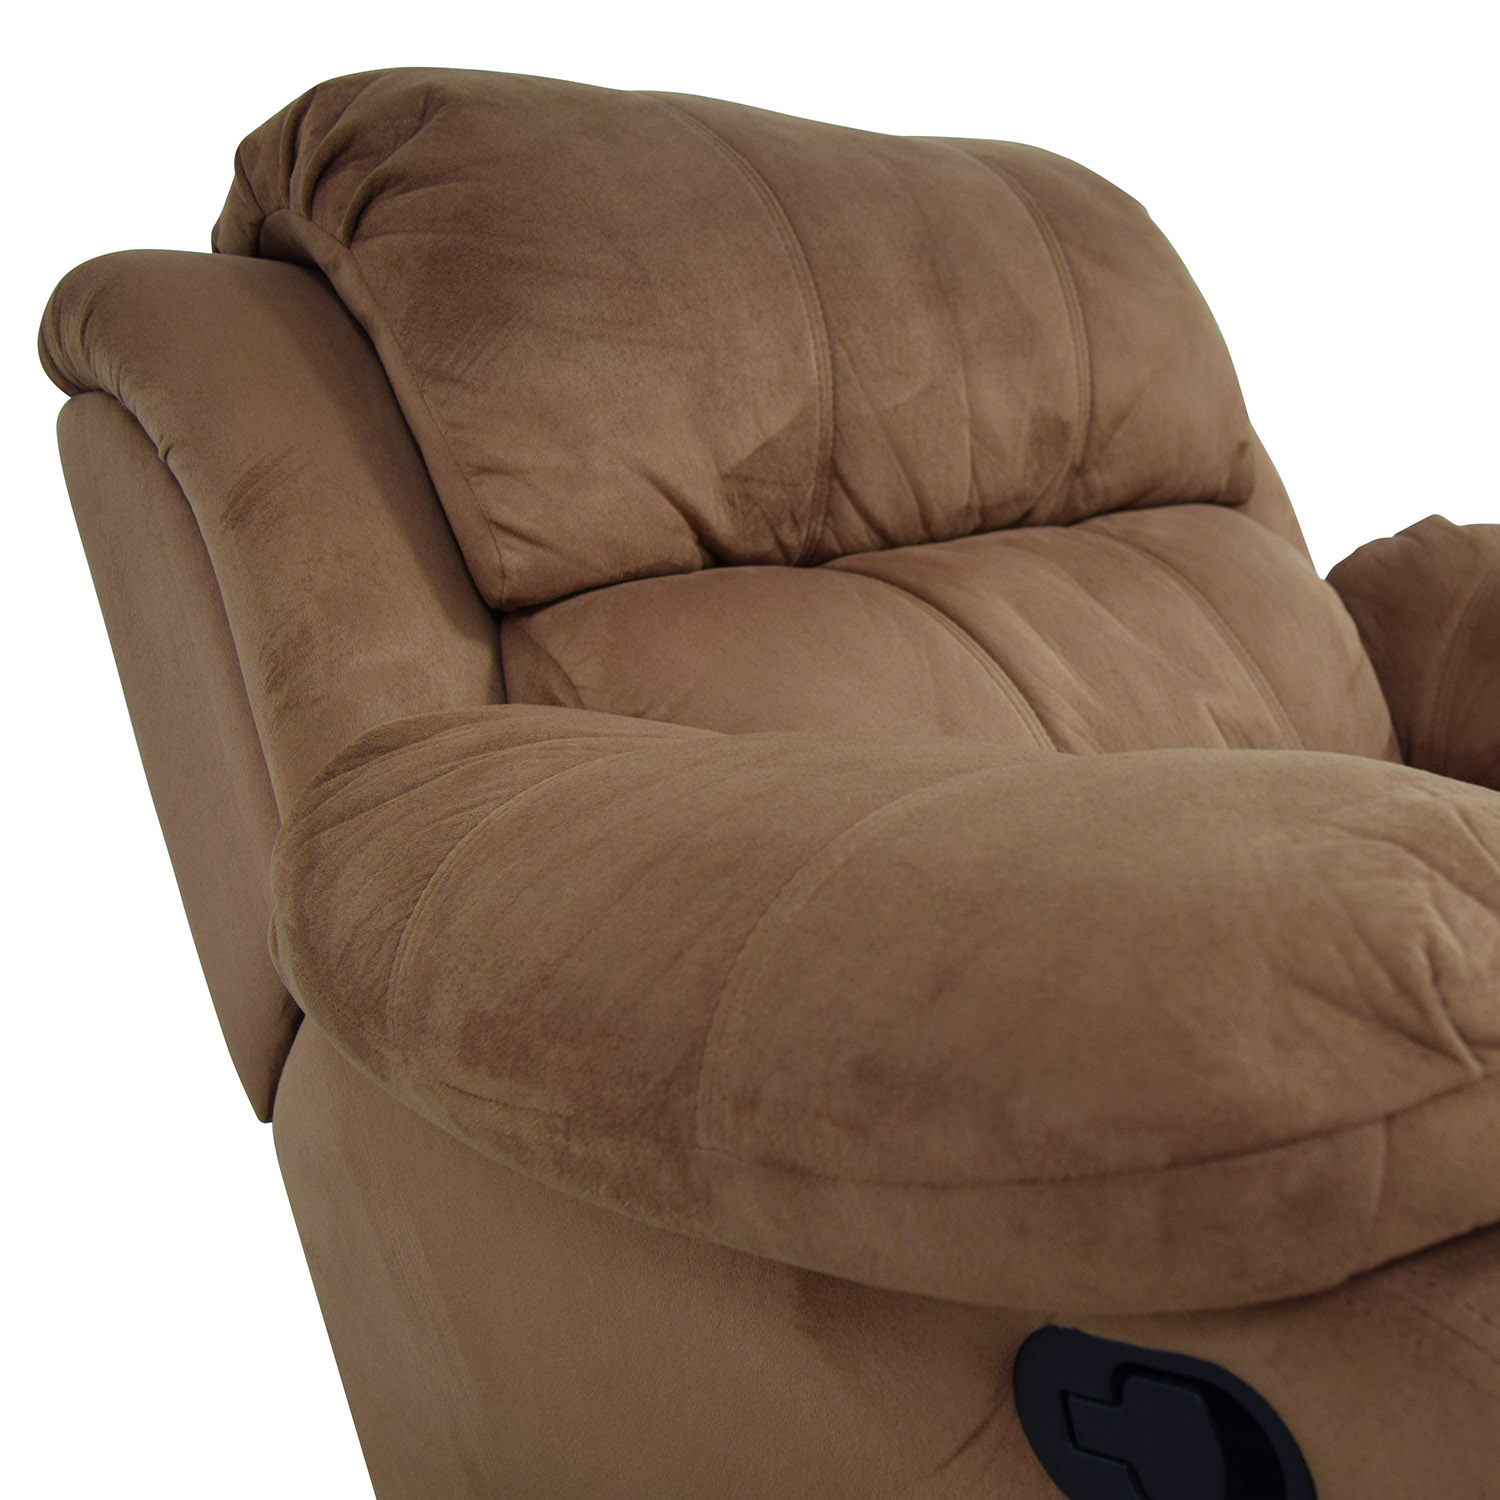 Discount Recliners Full Size Of Sofa Recliner Bed